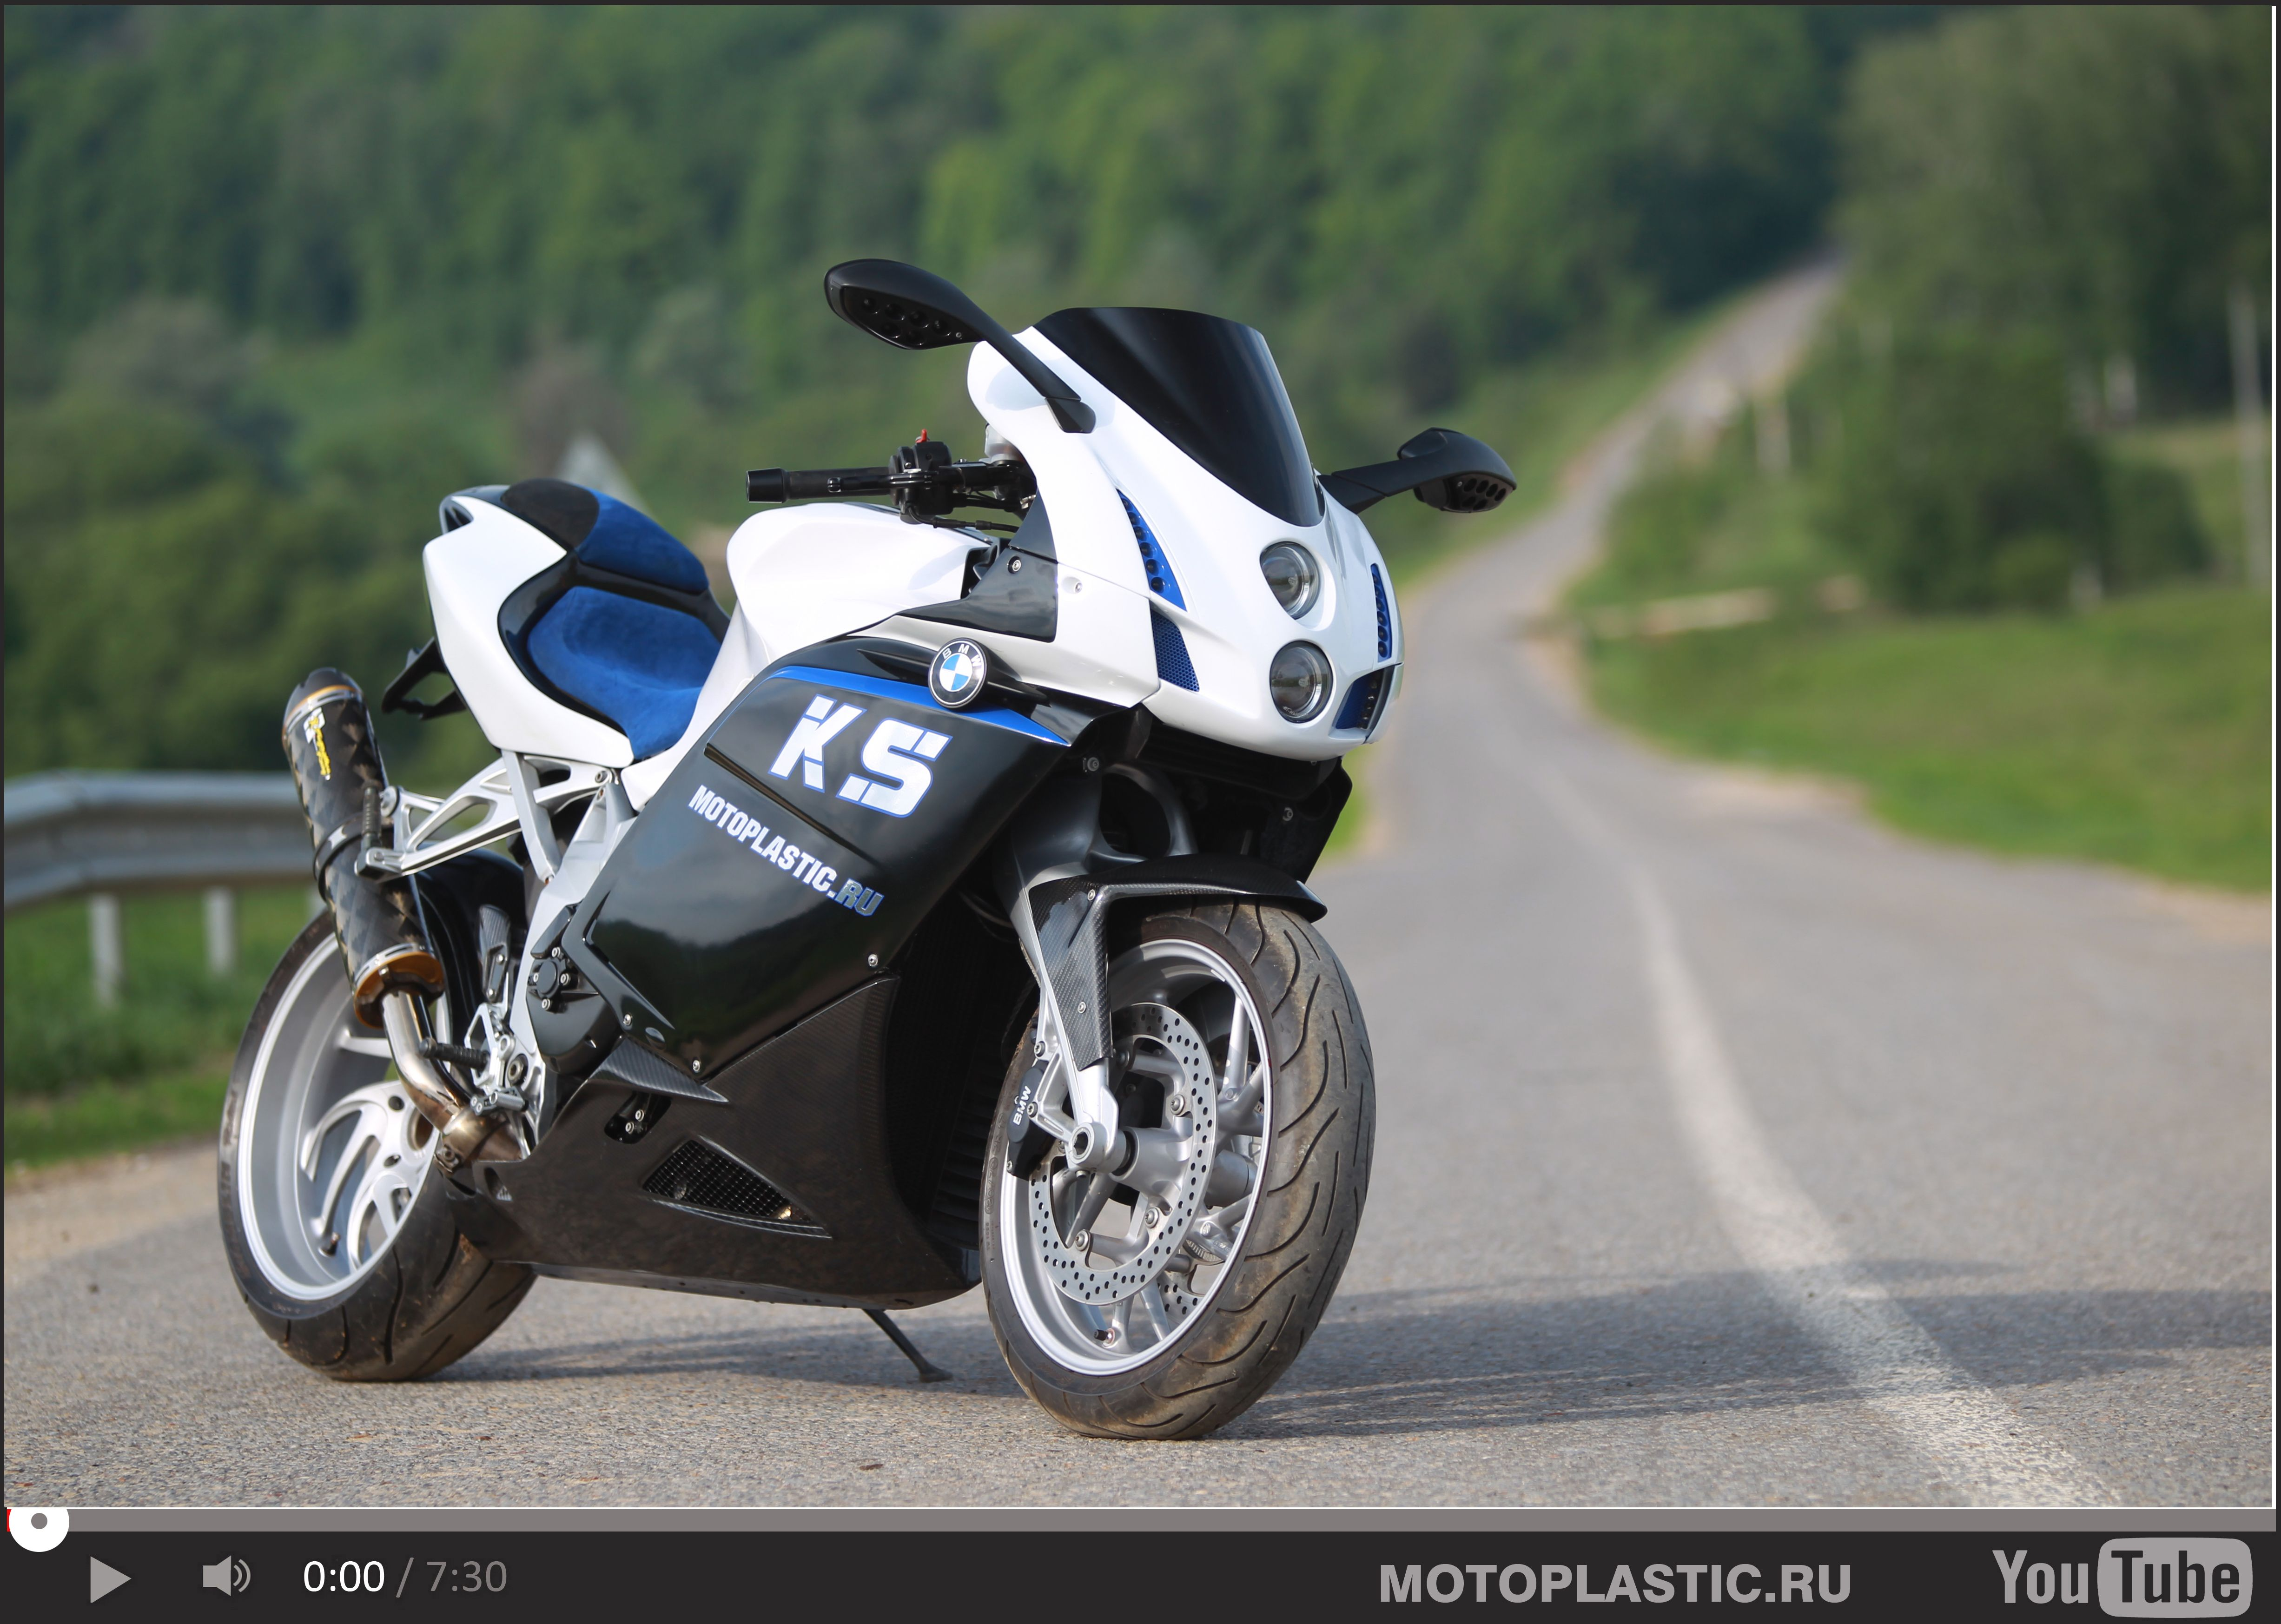 Bmw K 1300 S Tuning Custom Front Fairing And Tail